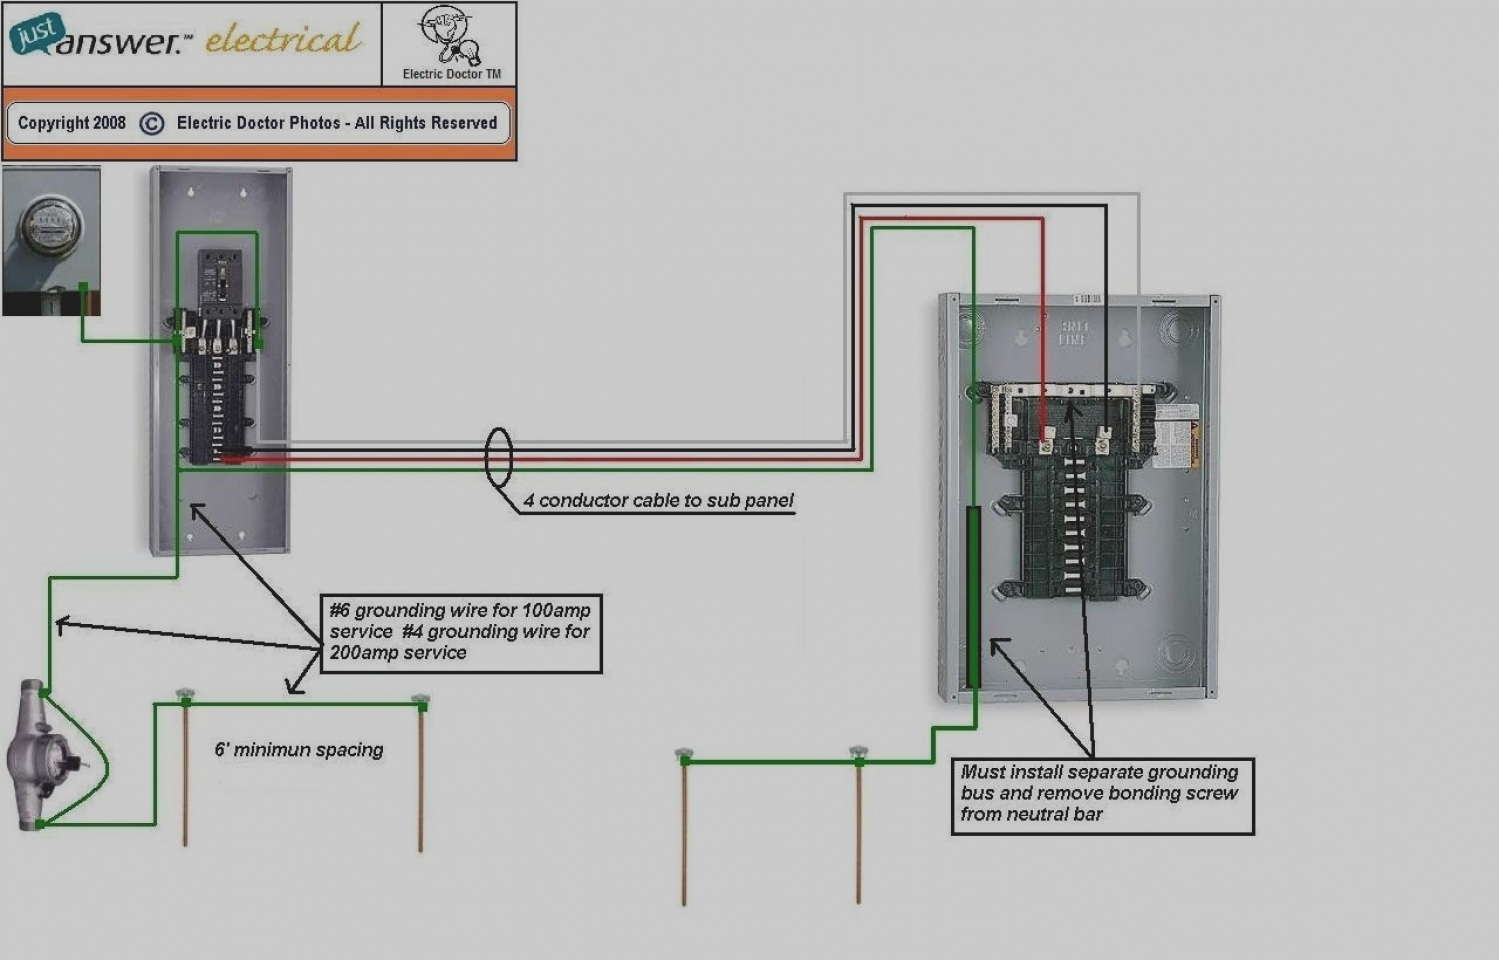 electrical sub panel wiring diagram Collection-27 Inspirational Pool Sub Panel Wiring Diagram 100 Amp Image 19-t